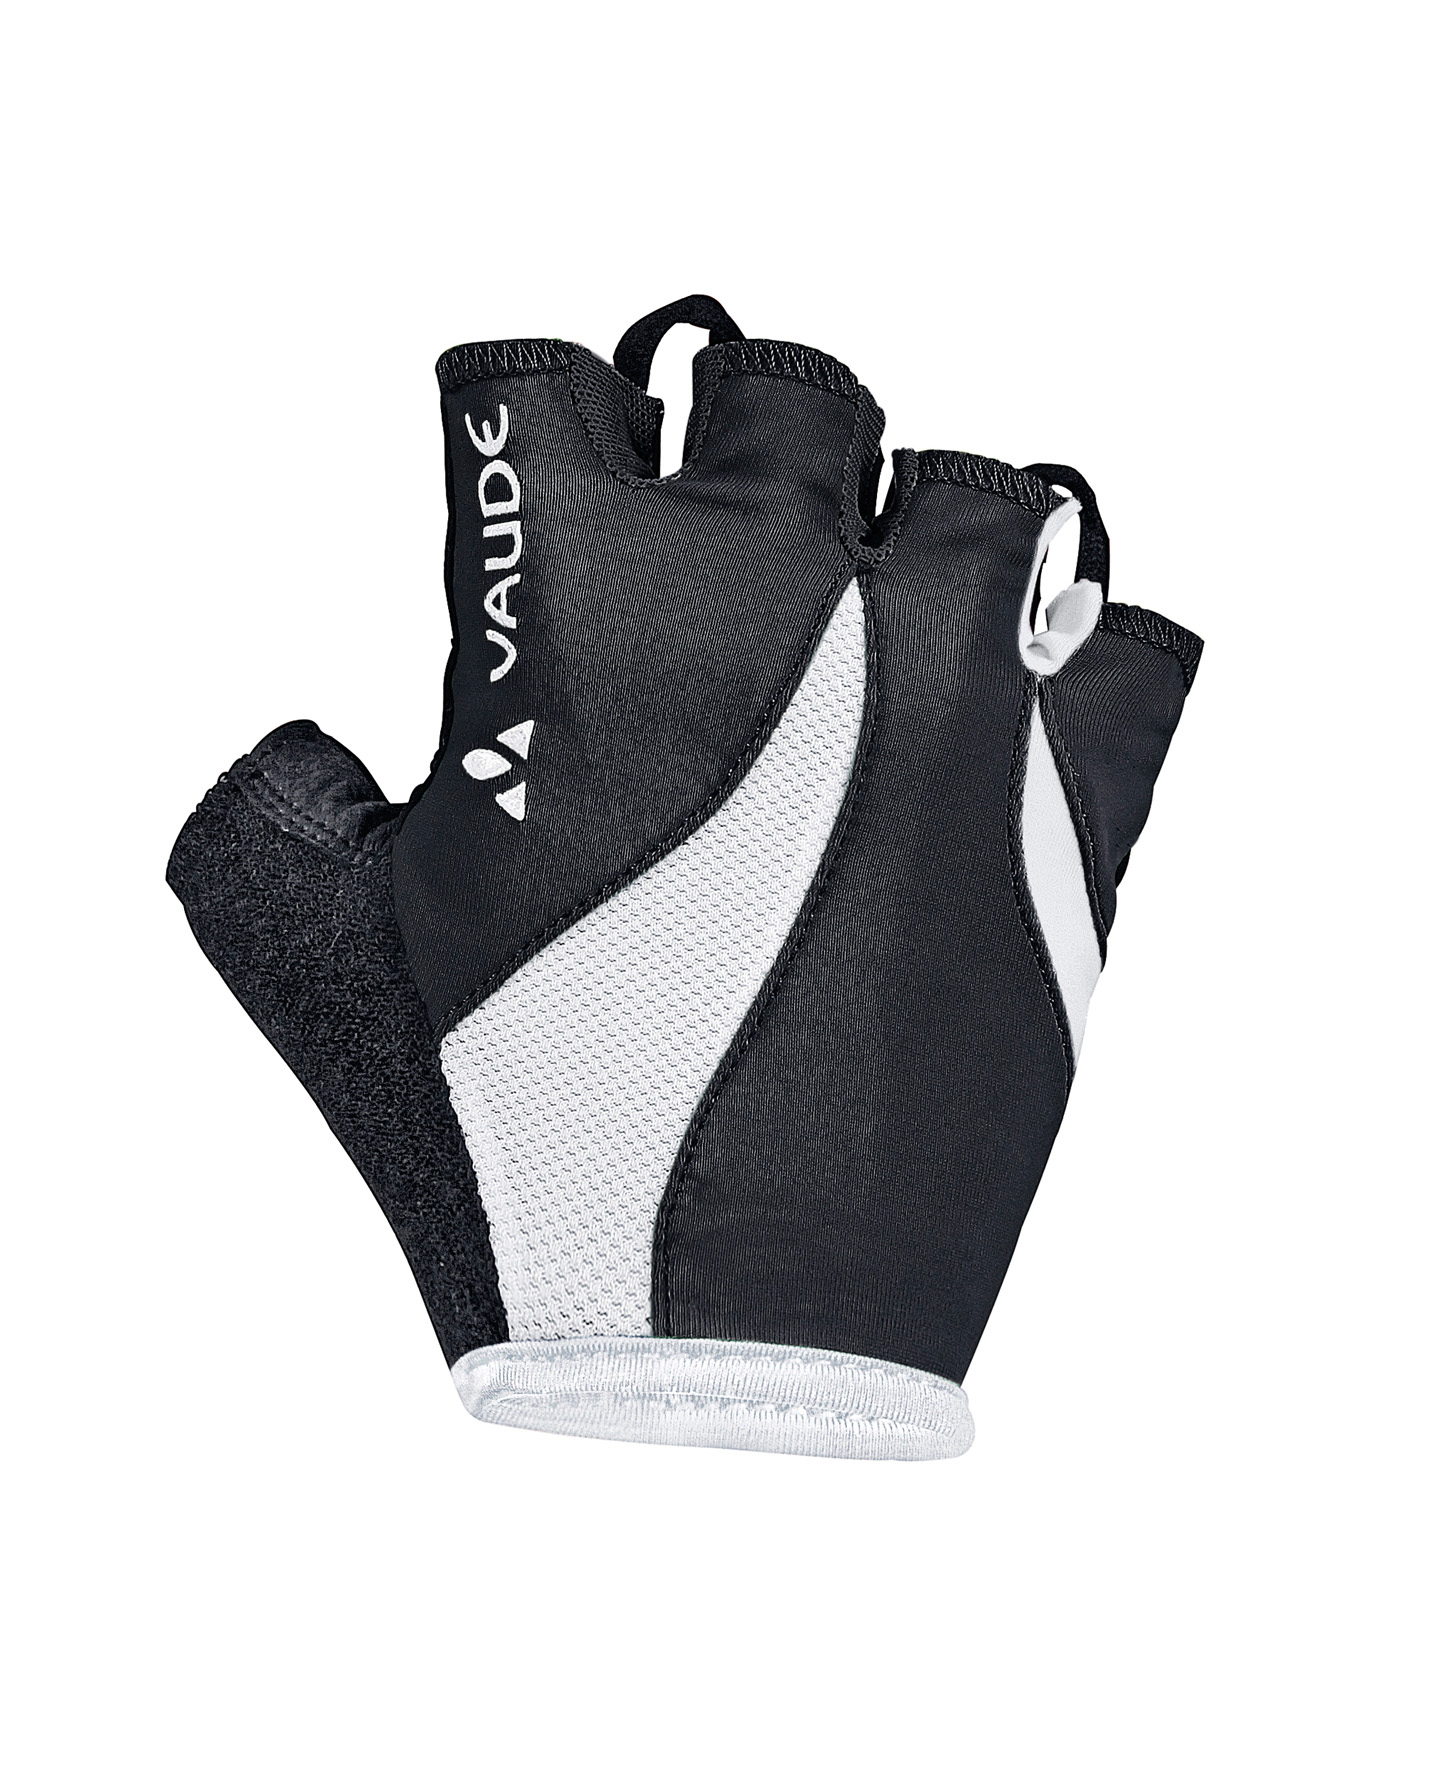 VAUDE Women´s Advanced Gloves black Größe 6 - VAUDE Women´s Advanced Gloves black Größe 6